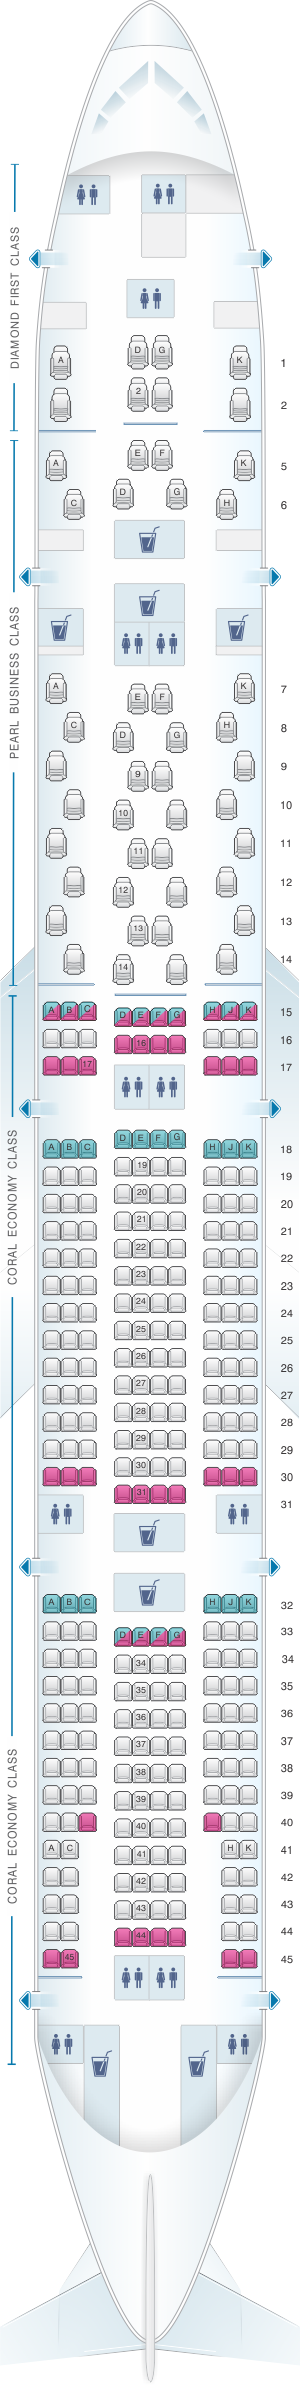 Seat map for Etihad Airways Boeing B777 300ER 3 class